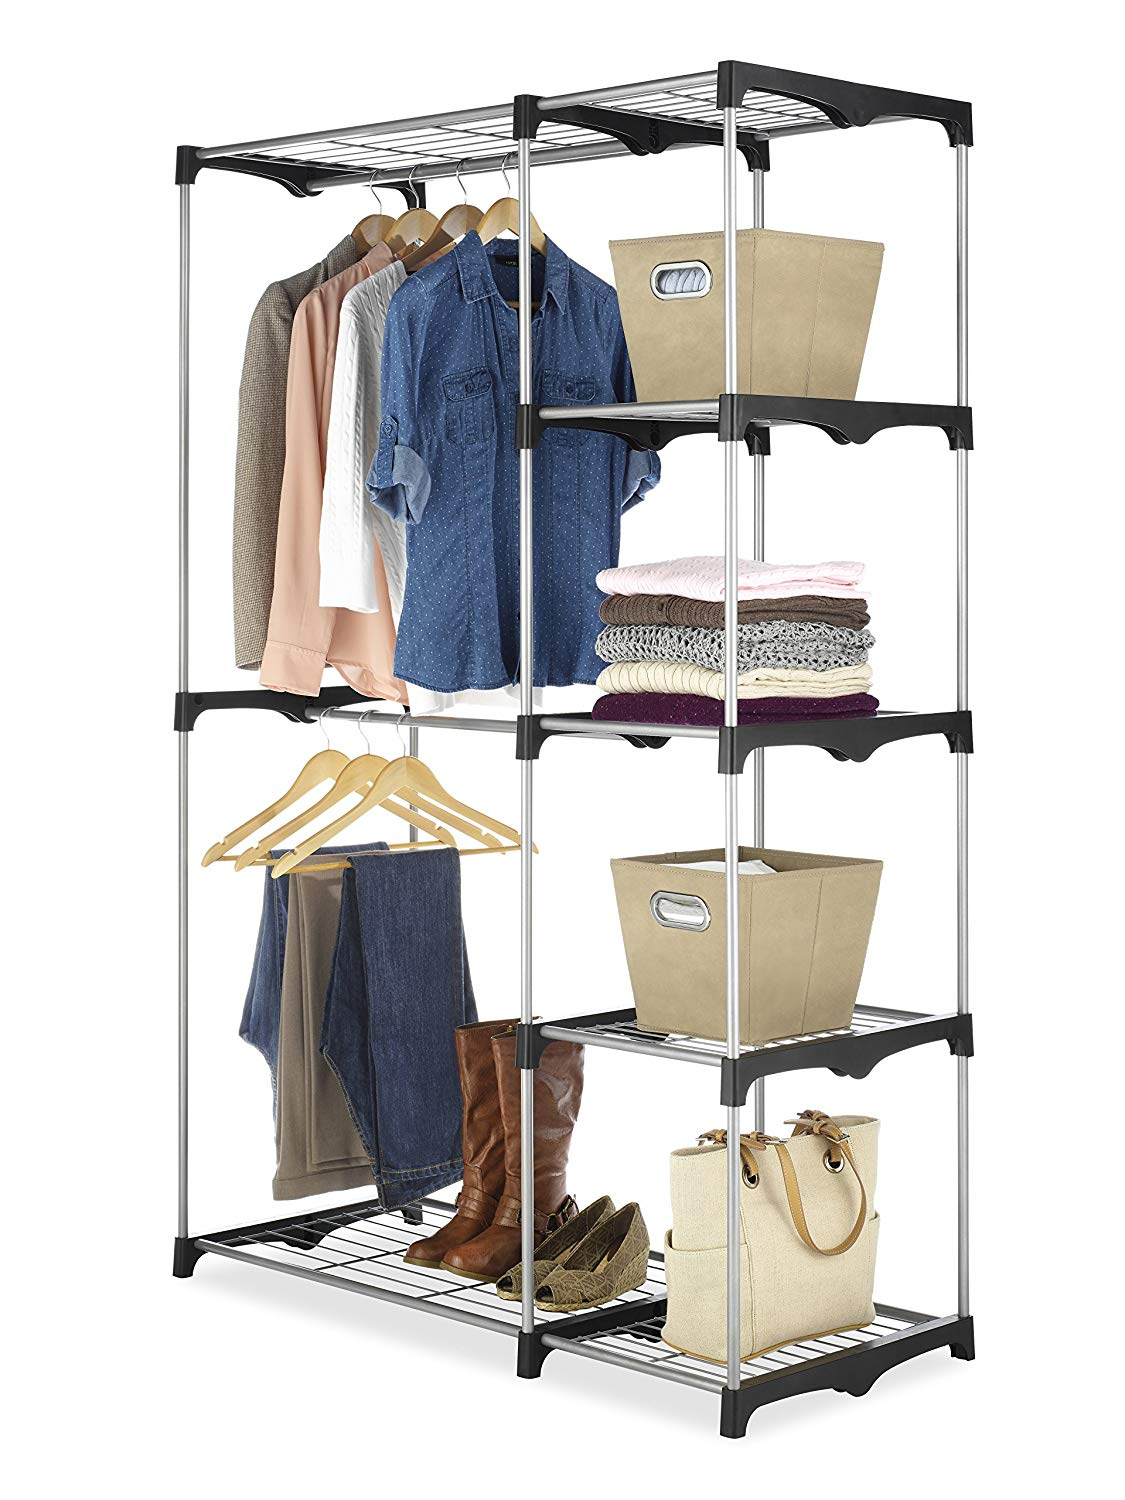 Double Rod Freestanding Plastic Wardrobe Closet